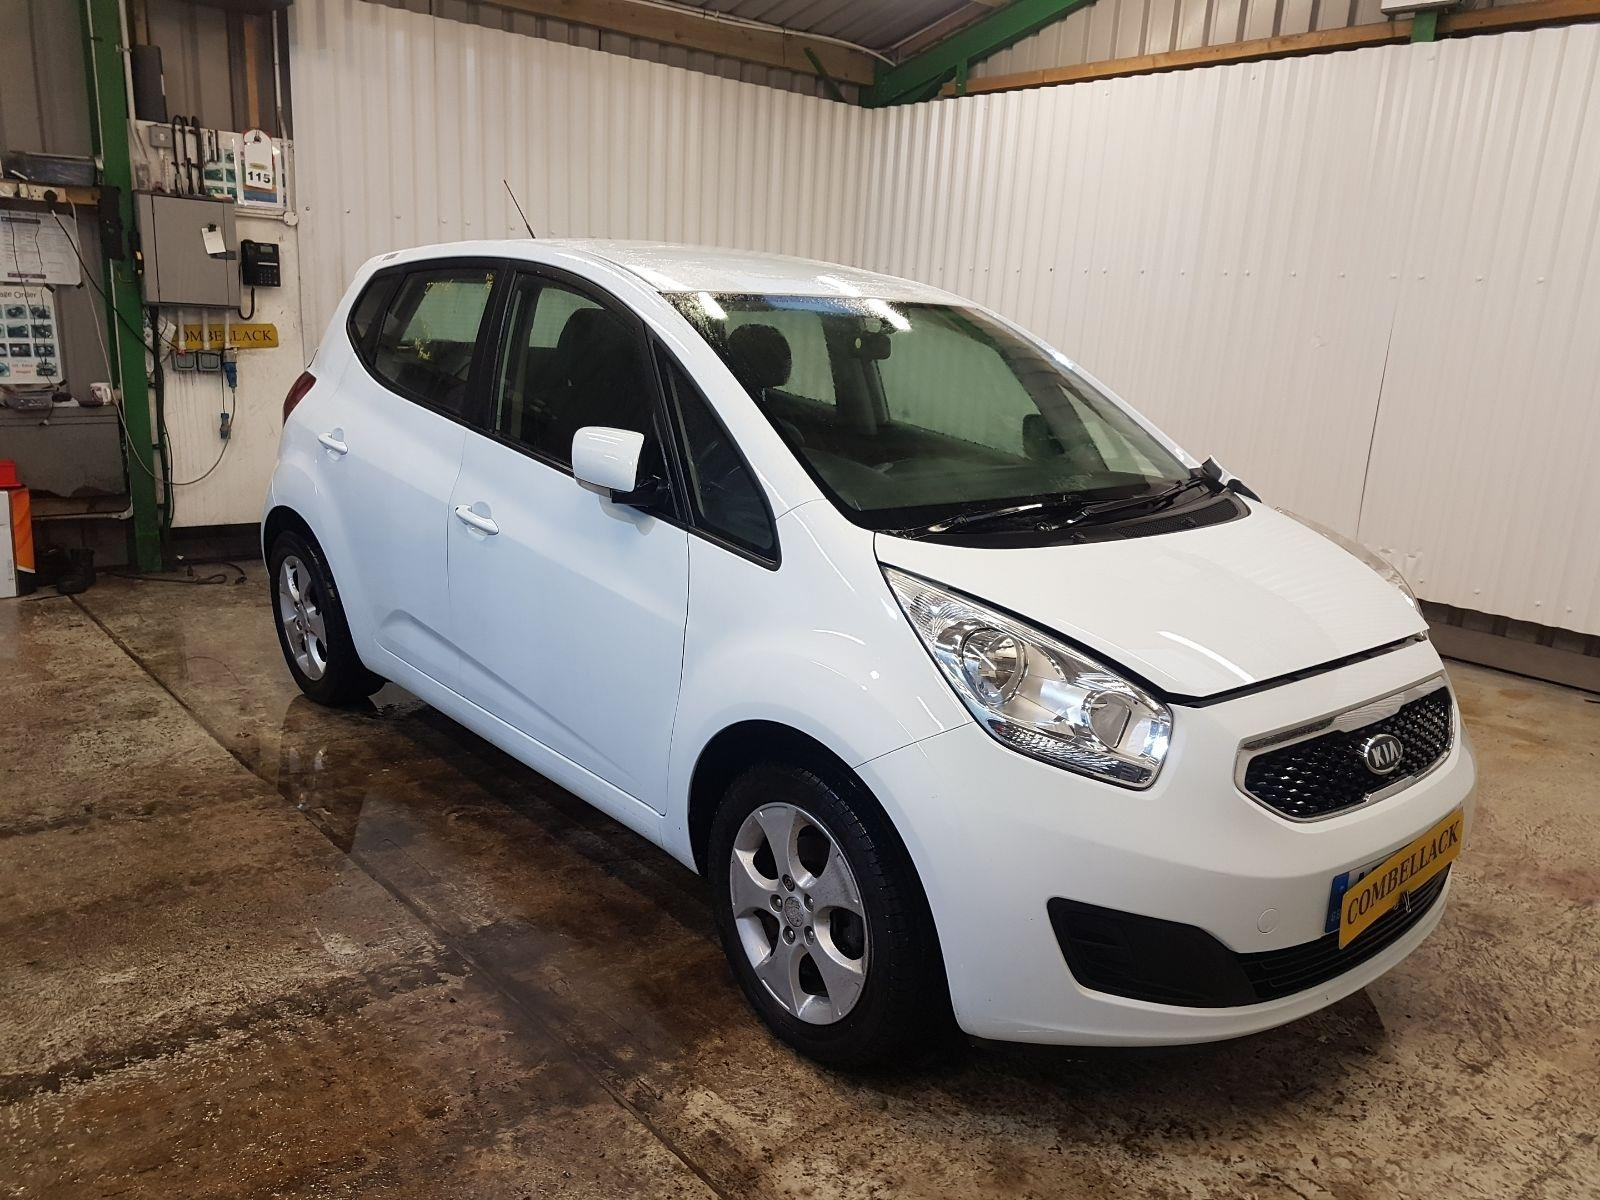 Kia Venga 2010 To 2014 2 5 Door Hatchback